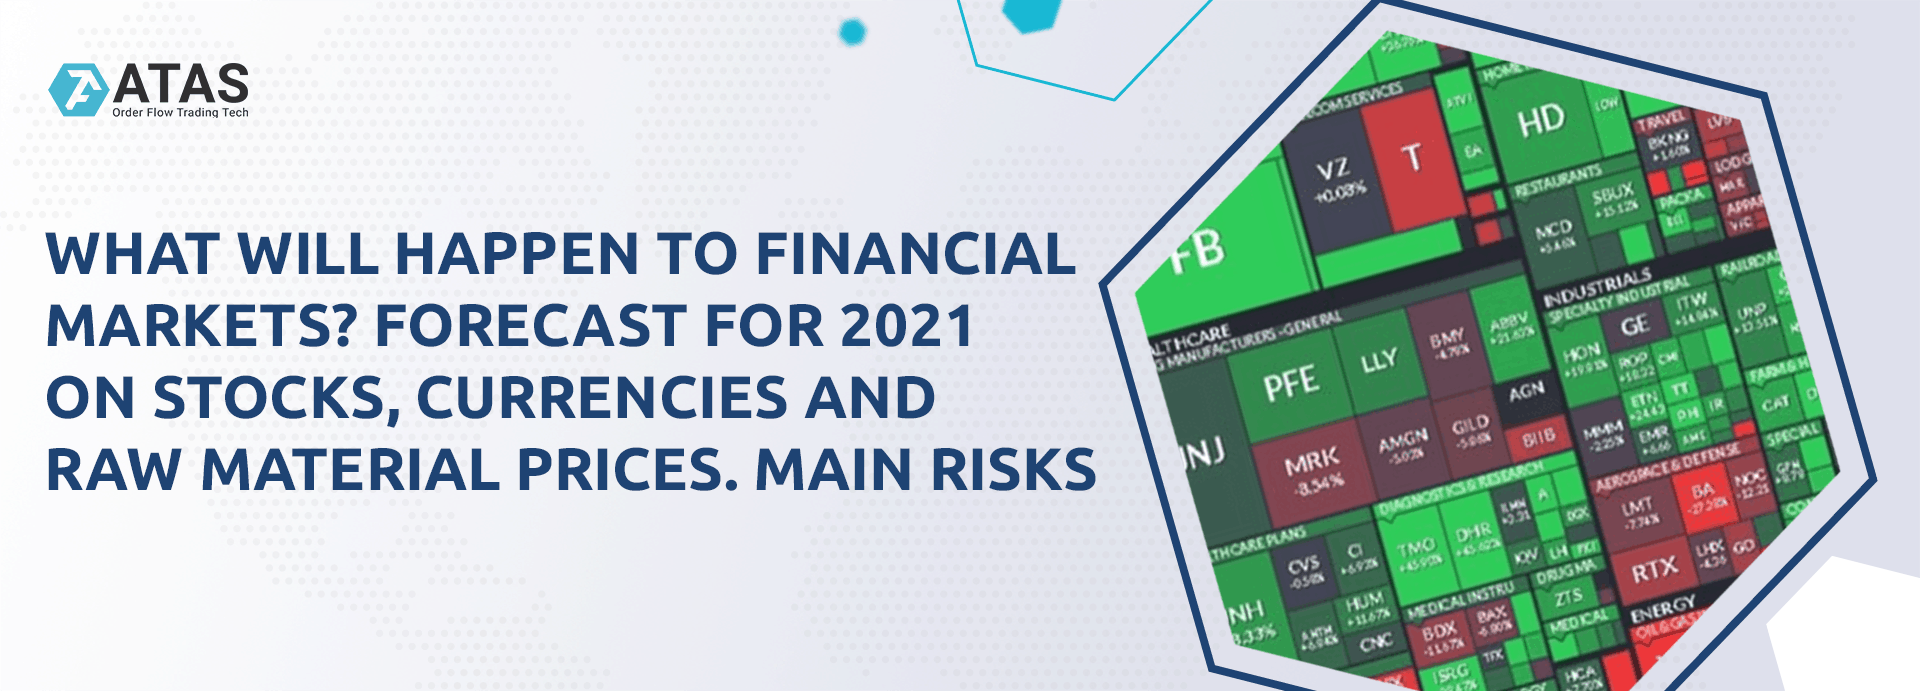 What will happen to financial markets Forecast for 2021 on stocks, currencies and raw material prices. Main risks